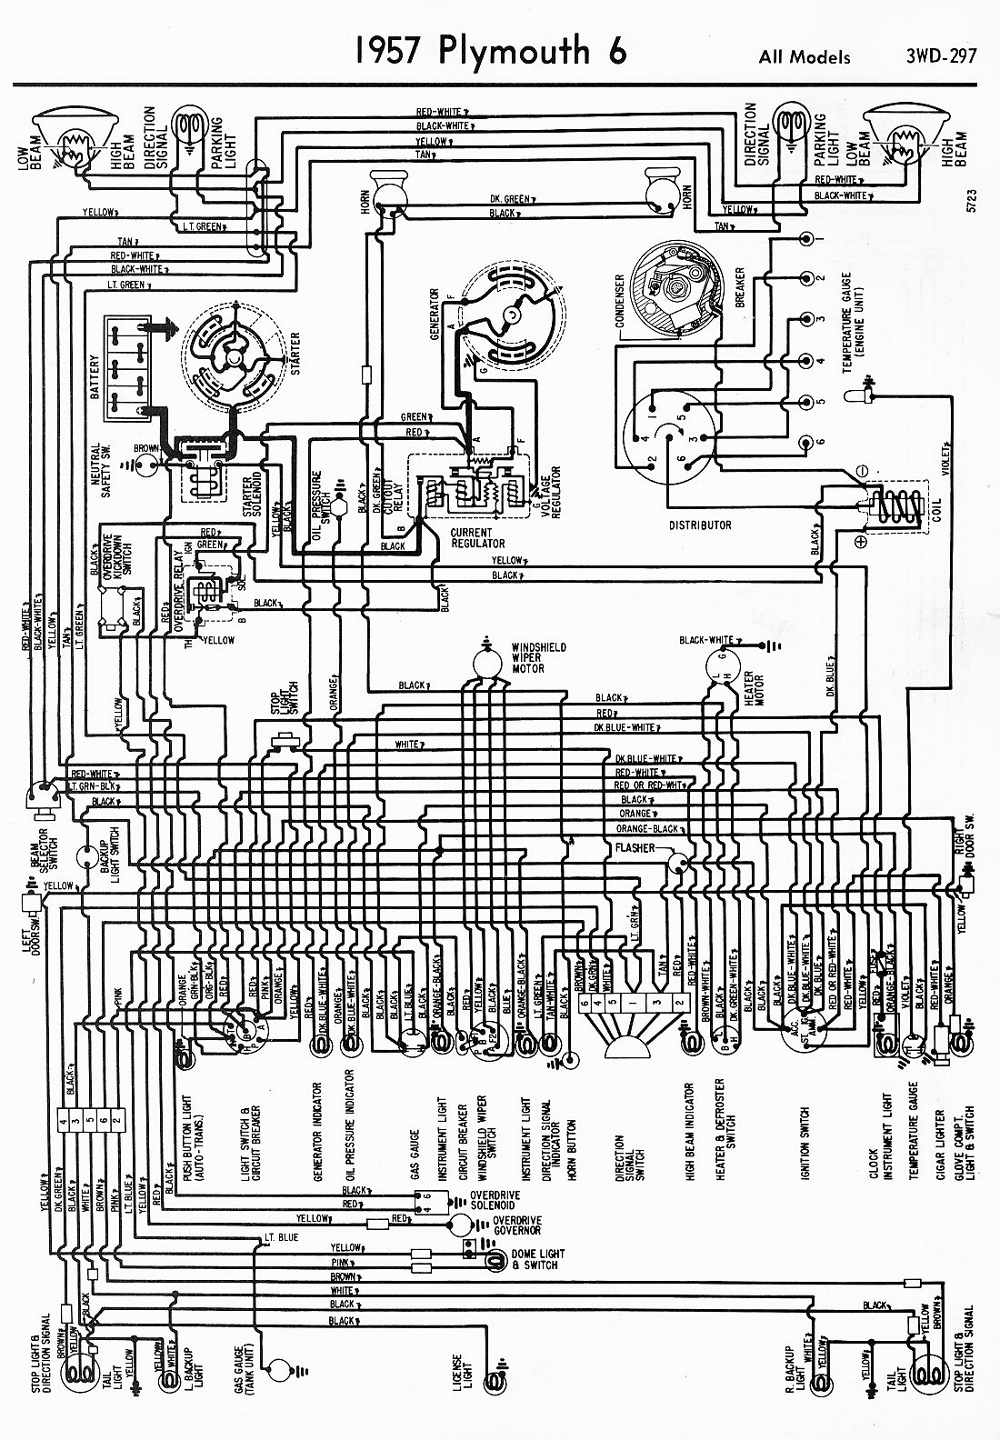 medium resolution of 1957 plymouth wiring diagram wiring diagram portal rh 14 1 kaminari music de mymopar wiring diagrams for 1951 plymouth 1950 plymouth wiring harness